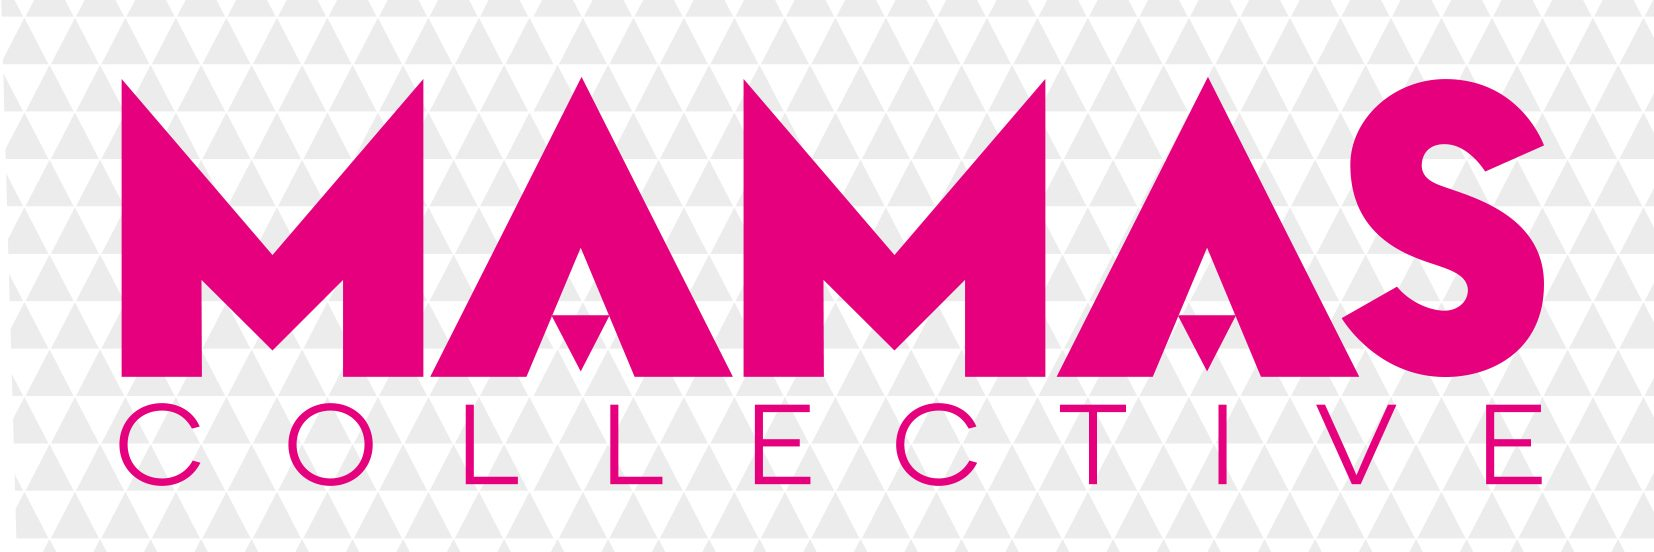 We are Mamas Collective